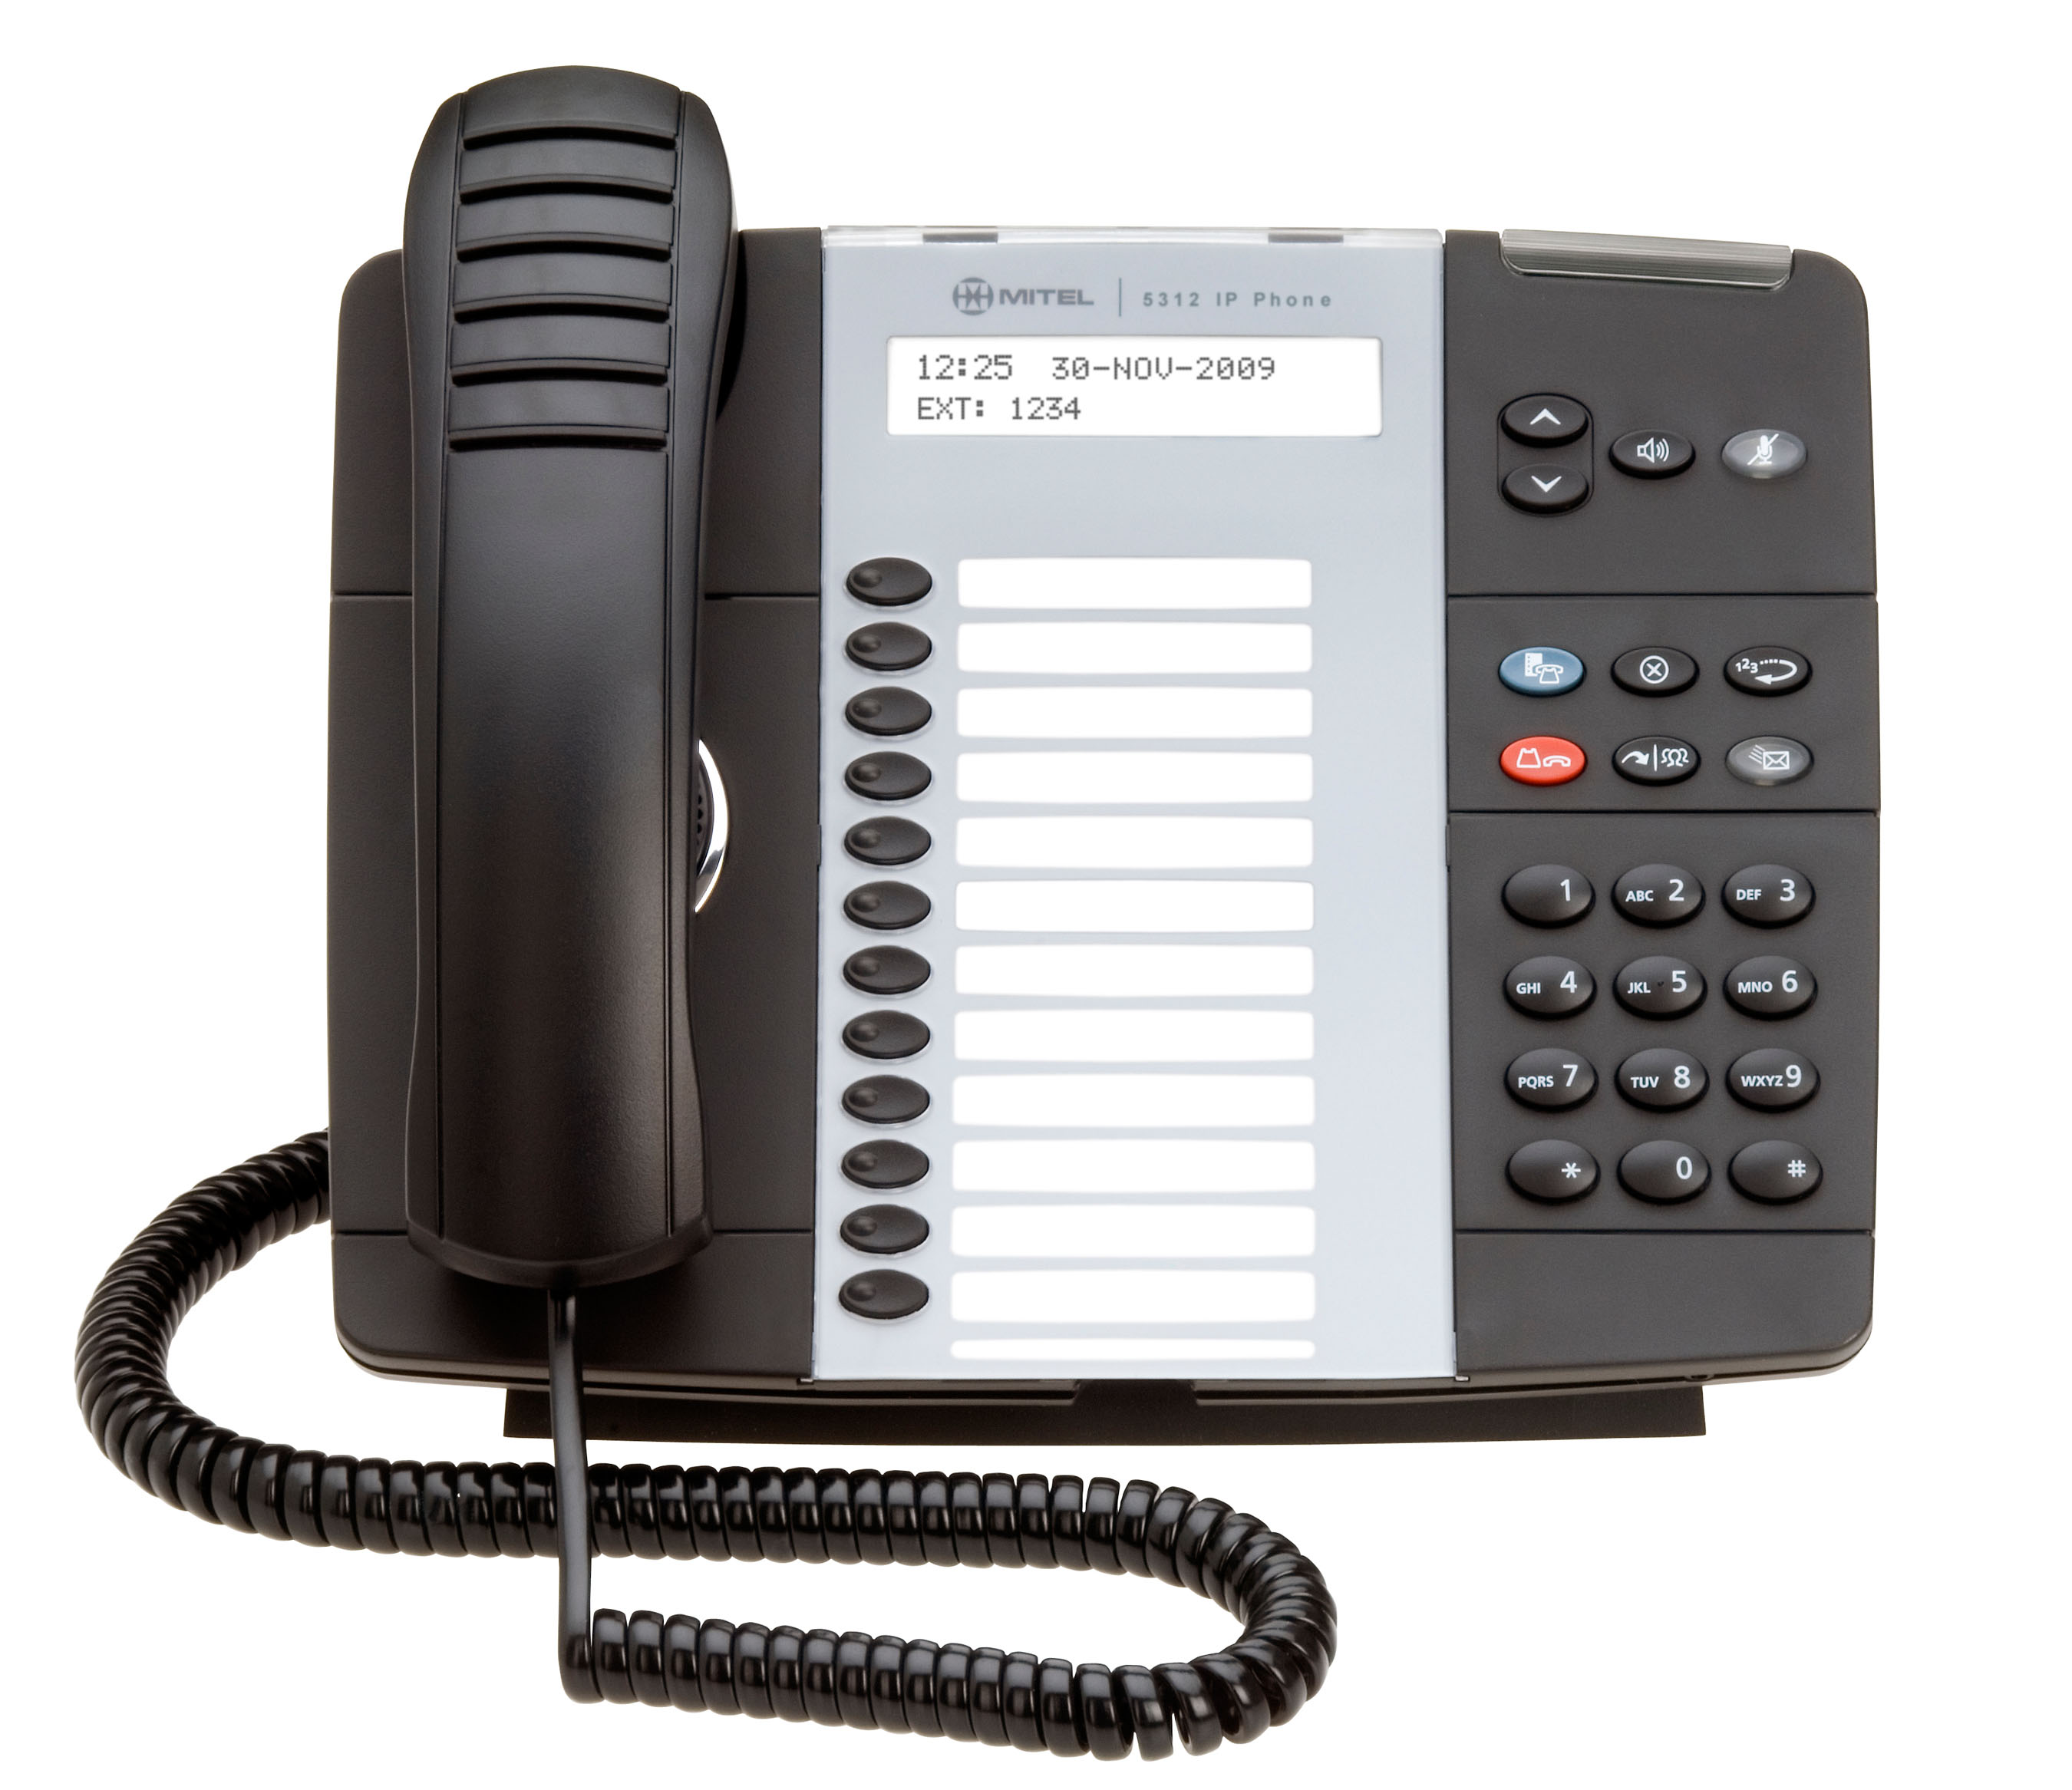 Mitel Model 5312 VoIP Office Telephone